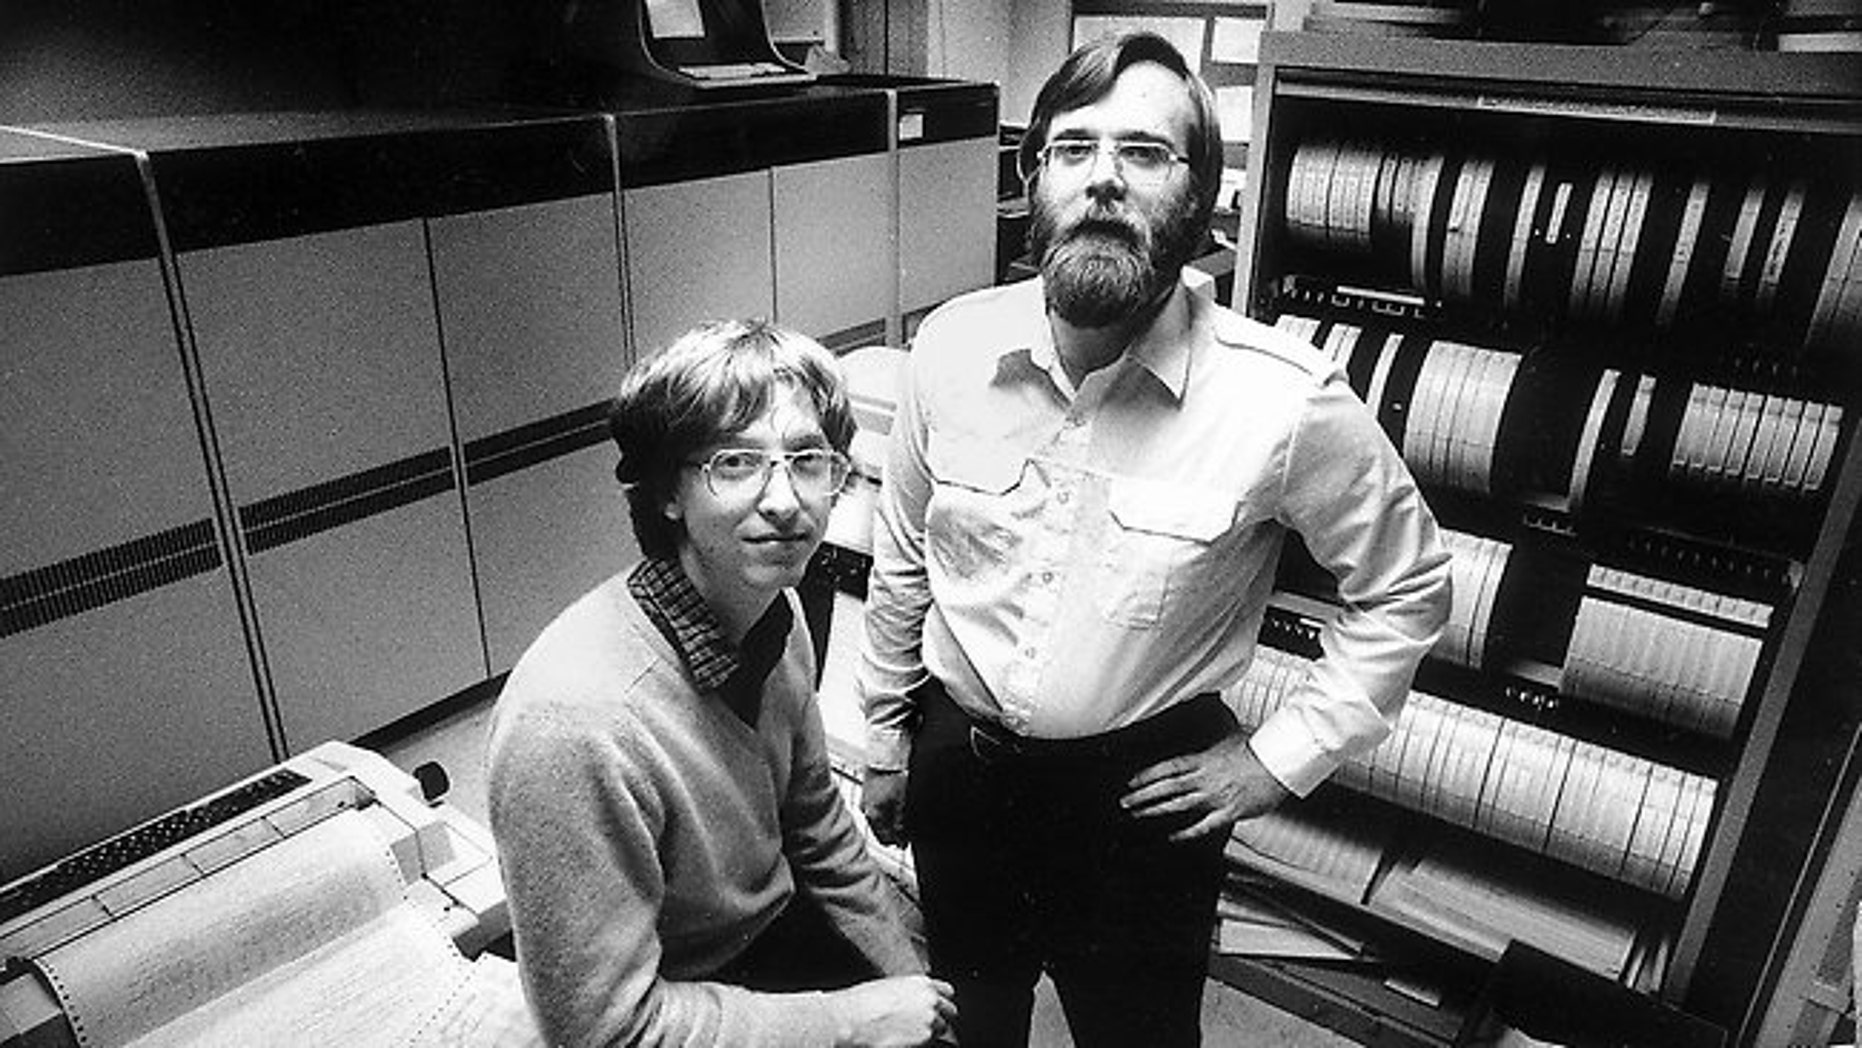 Microsoft founders Bill Gates, left, and Paul Allen pictured in 1981.